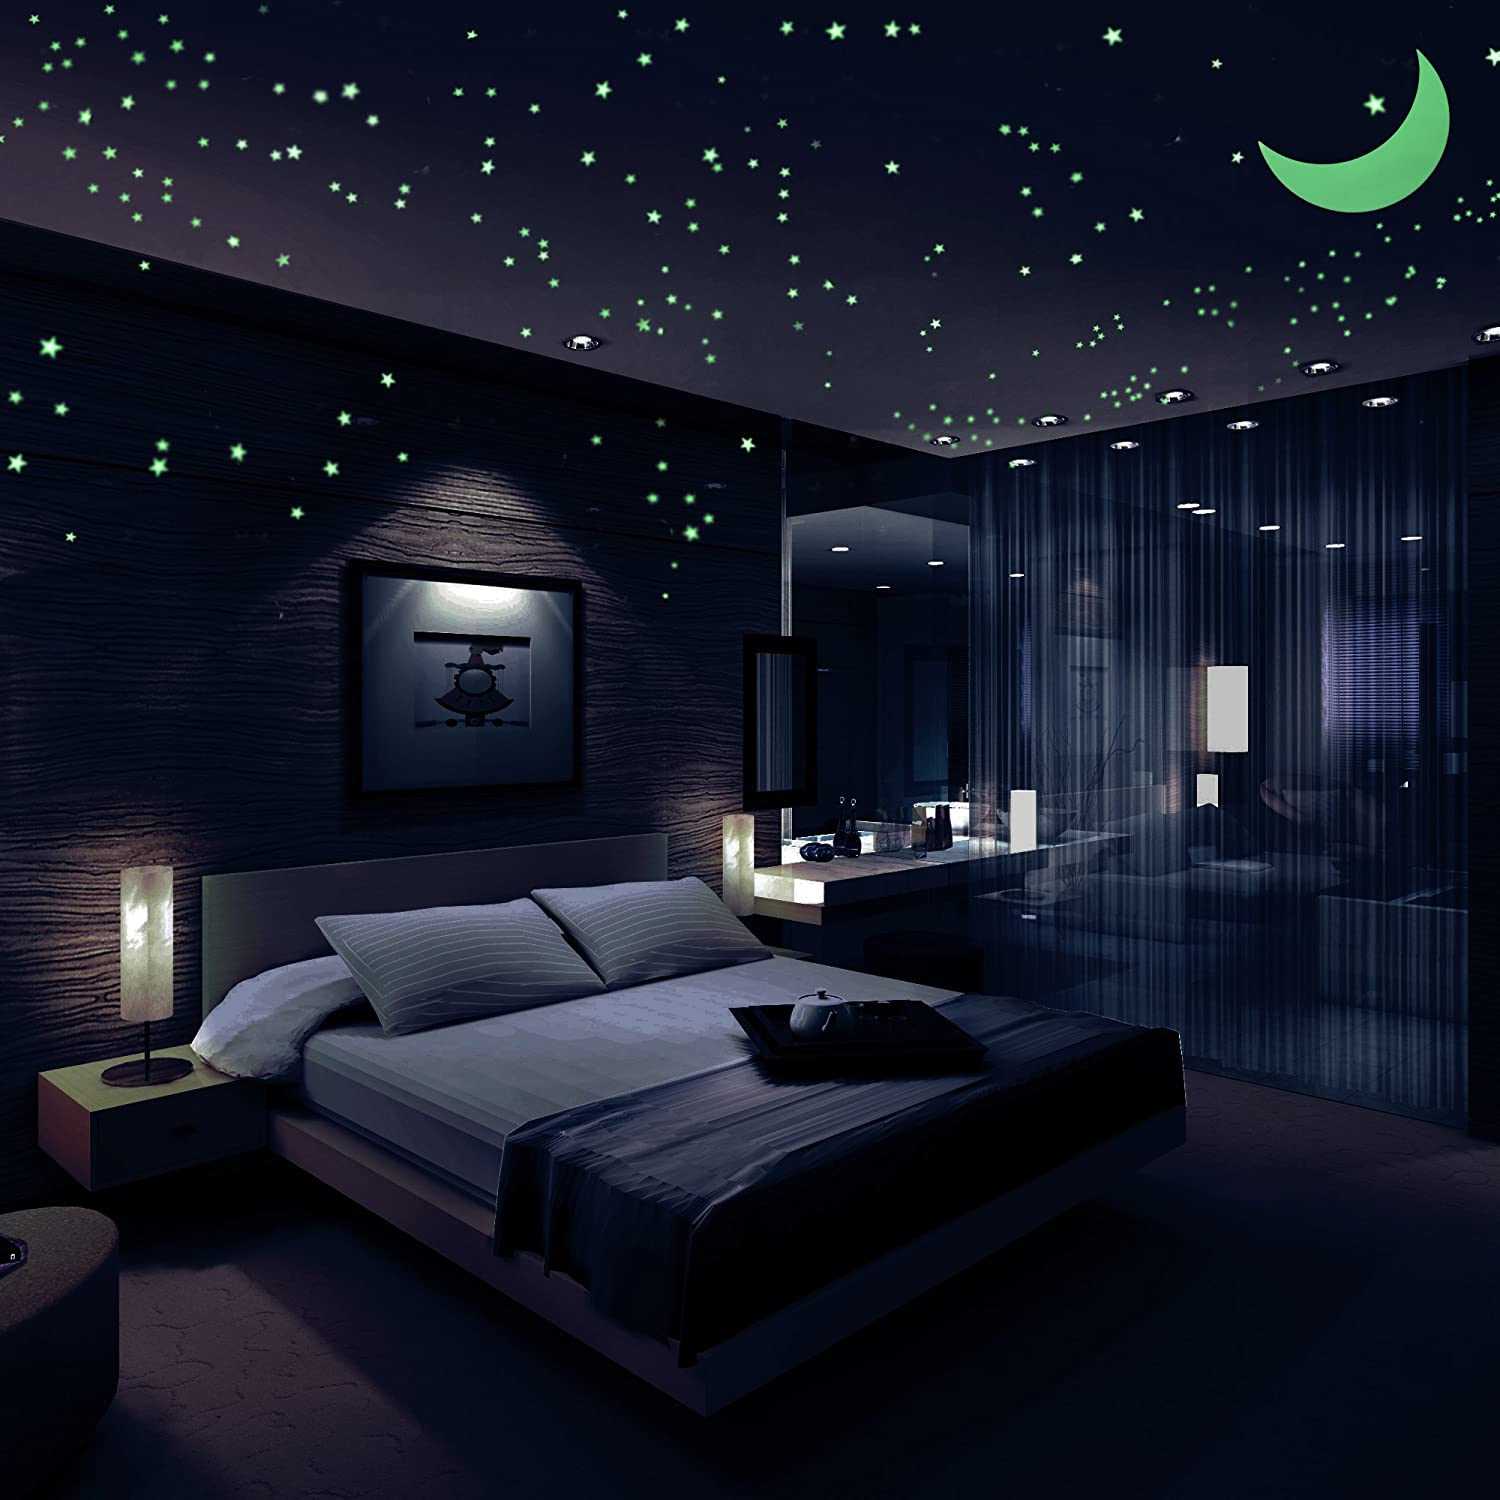 Wall stickers murals amazon glow in the dark stars amipublicfo Images